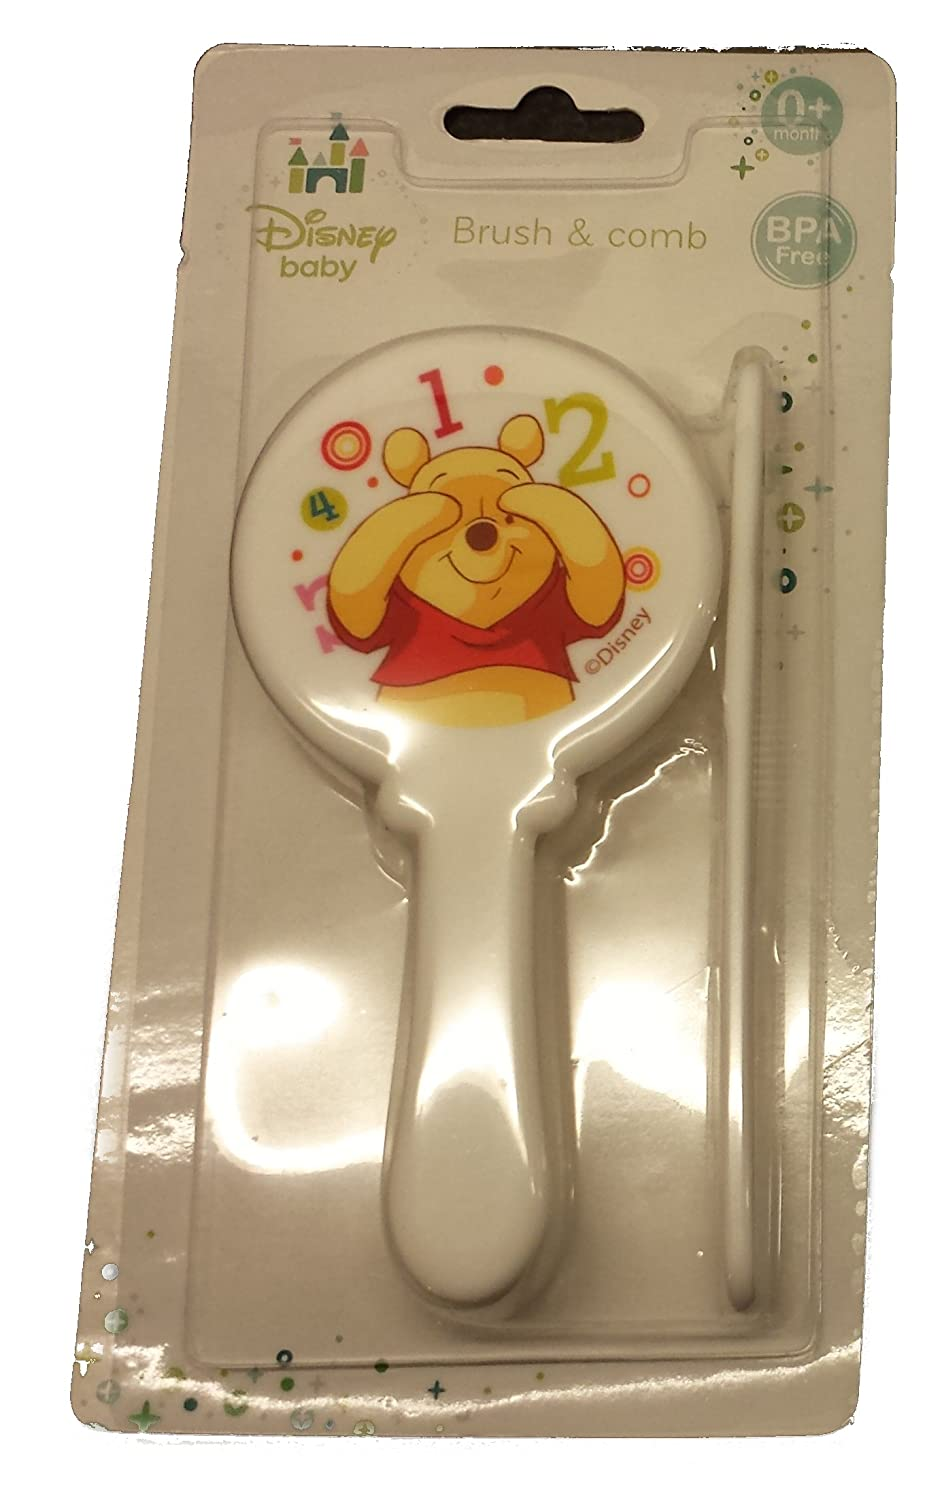 WINNIE THE POOH SHAPED CUTE YELLOW HAIR BRUSH AND COMB SET Disney